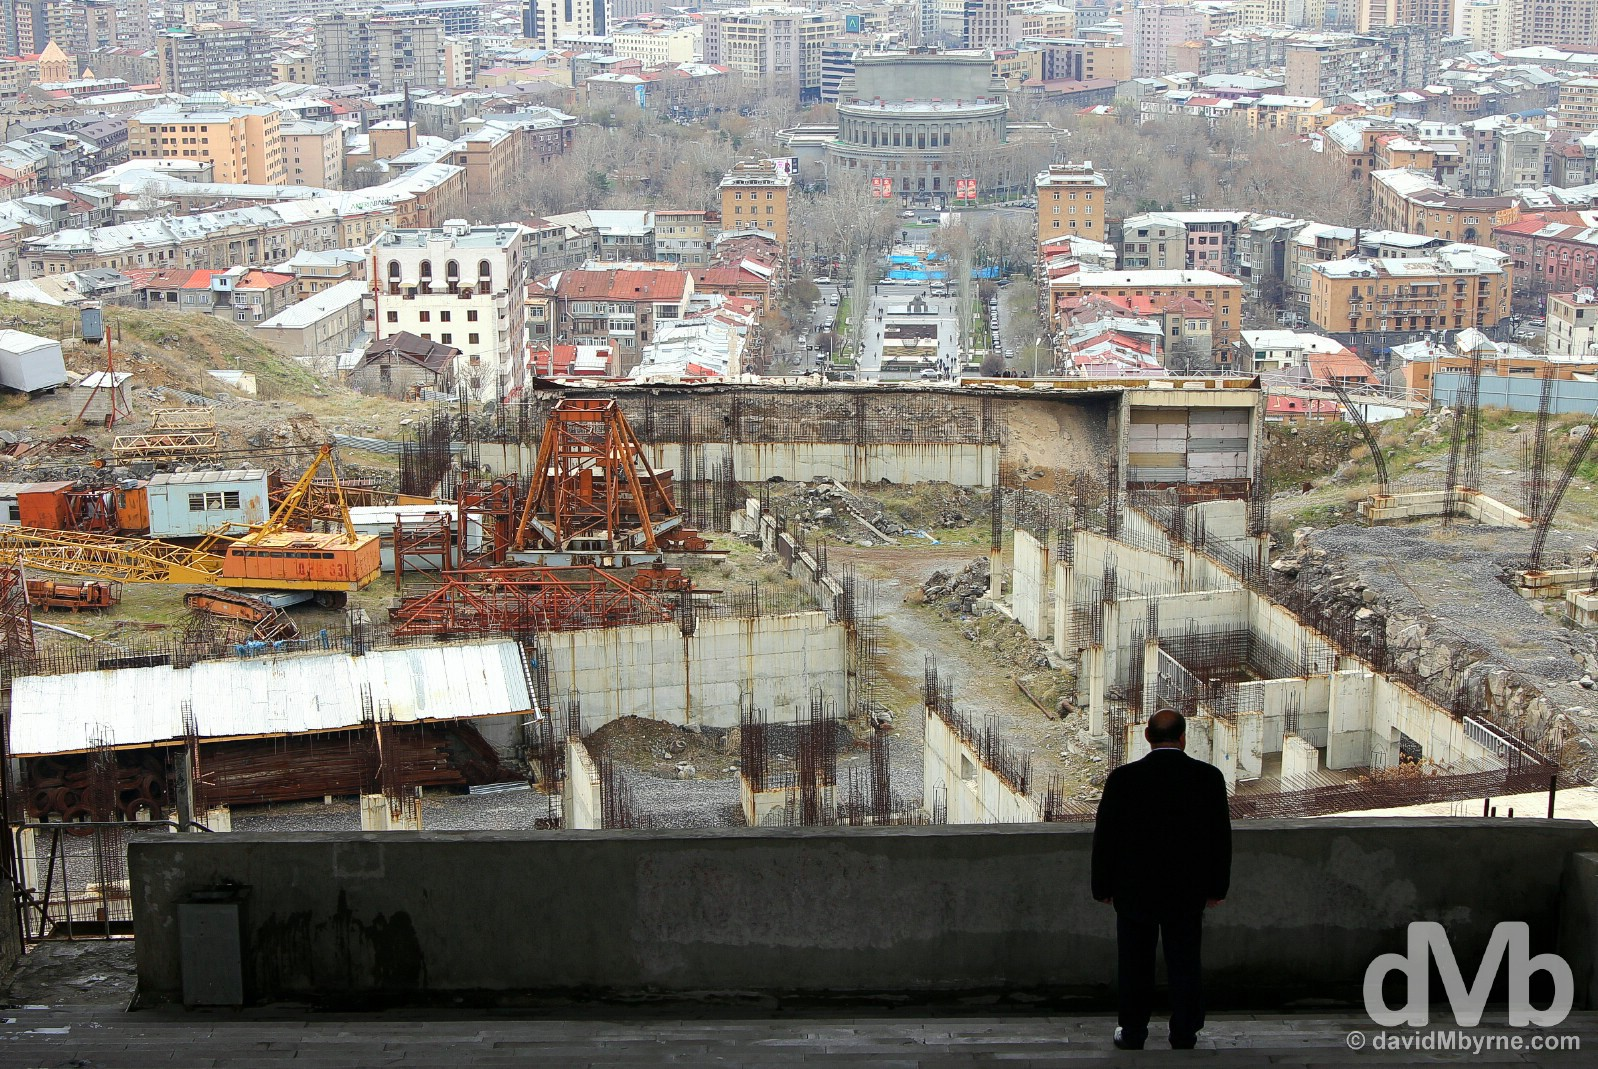 The view of Yerevan, Armenia, as seen from the city's 50th Anniversary of Soviet Armenia Monument. March 24, 2015.